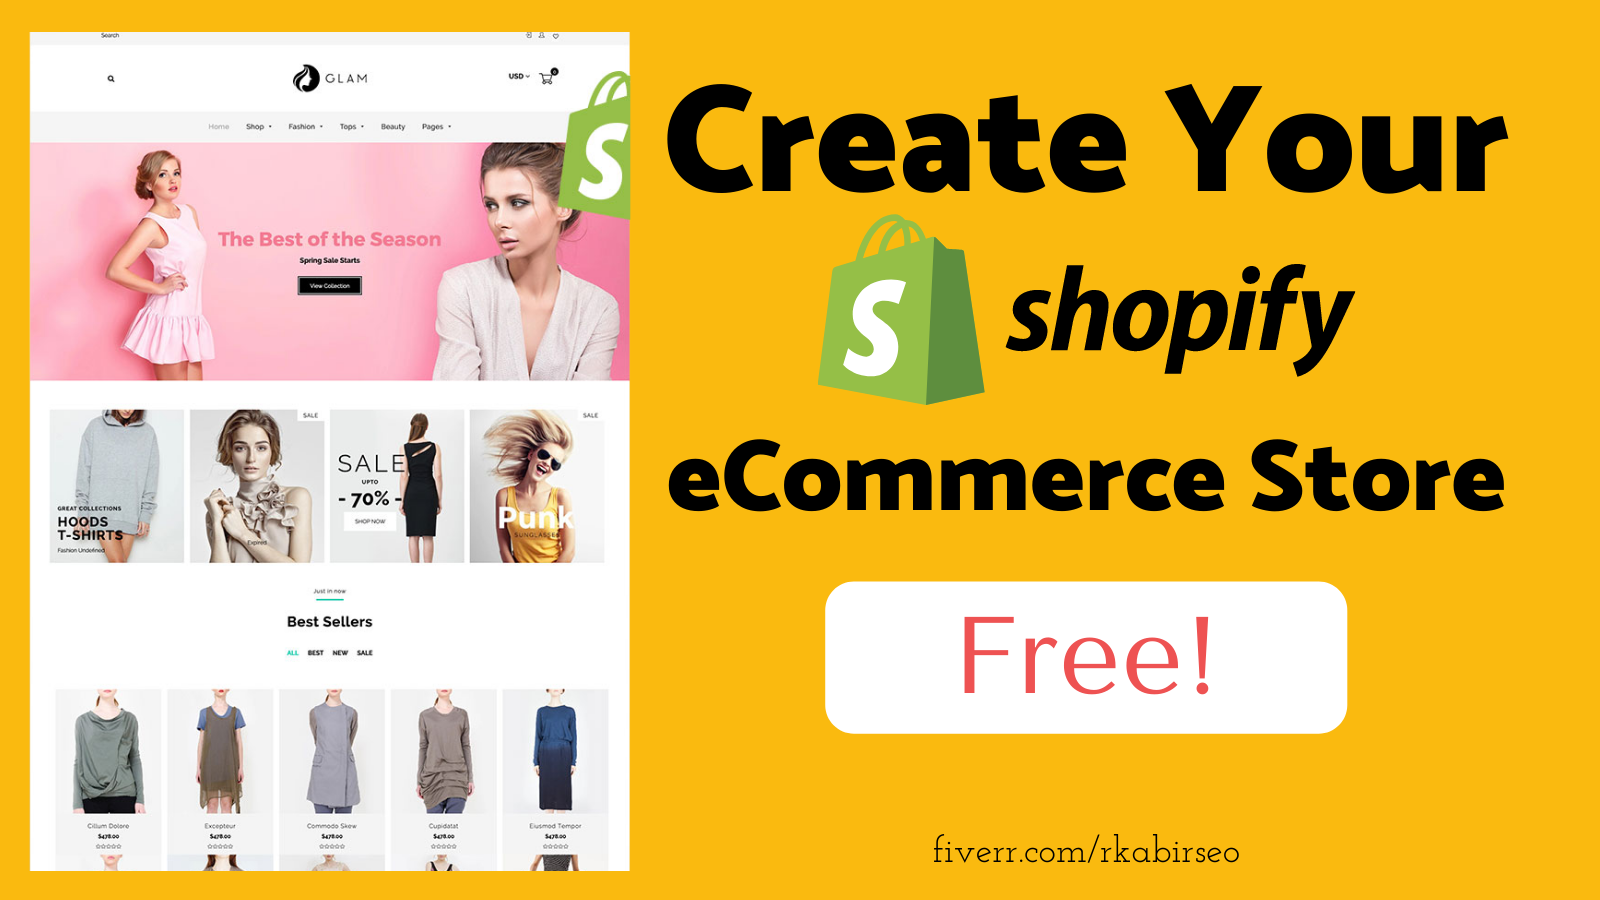 I will setup a new shopify store for free